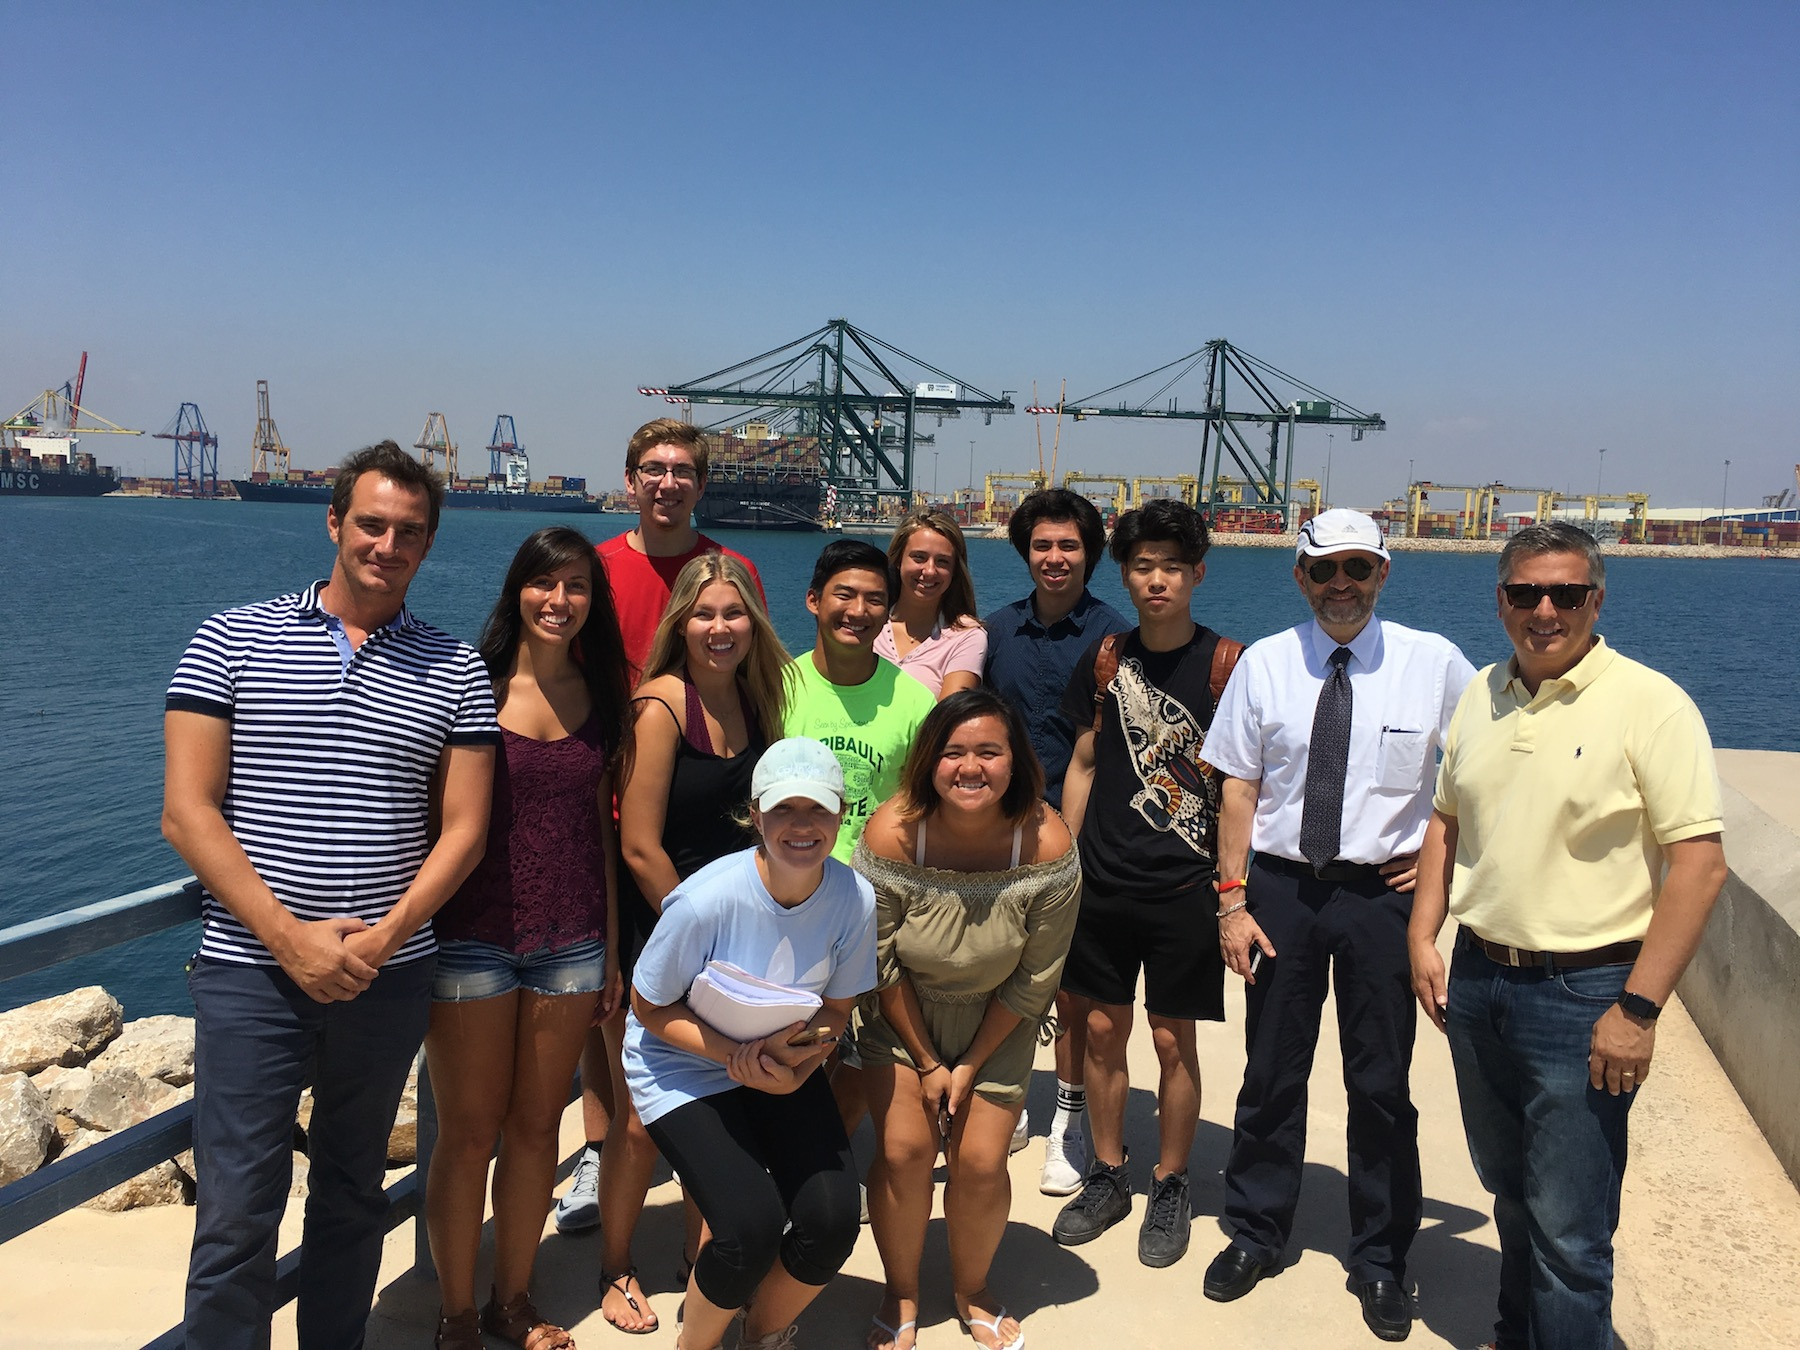 Twelve Iowa State students and faculty pose on a dock in front of the Port of Valencia with the sea and commercial ships in the background.